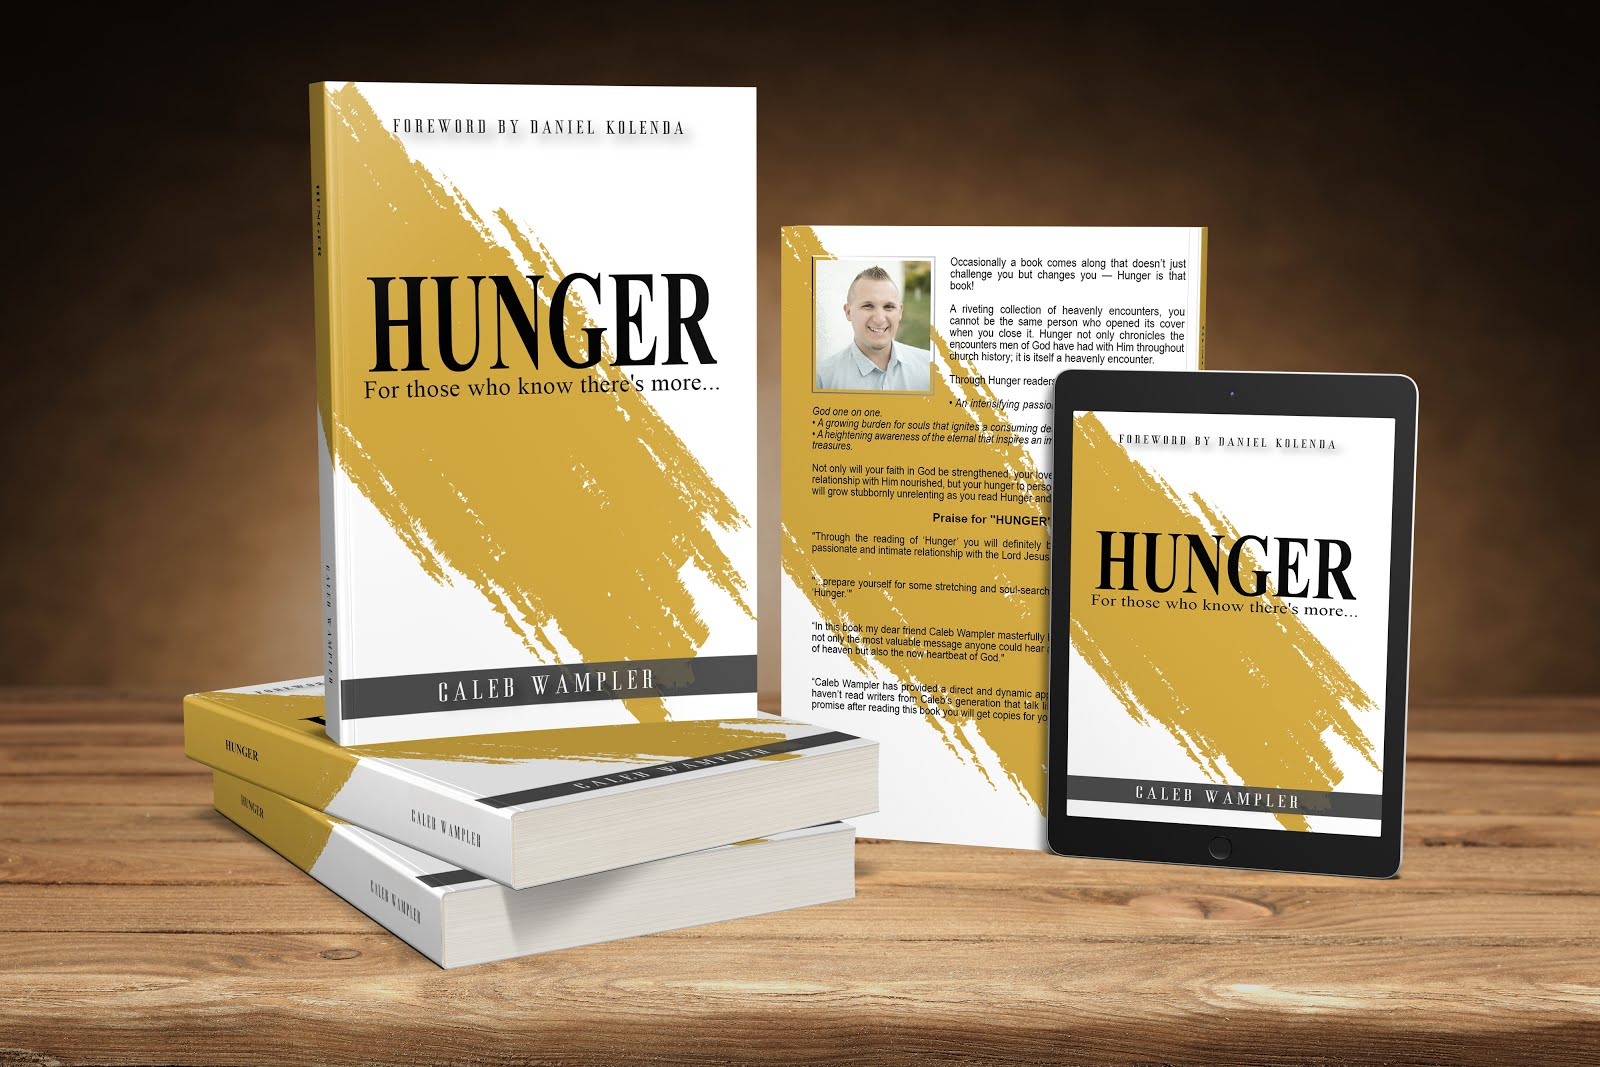 Hunger: For those who know there's more... BUY NOW ON AMAZON